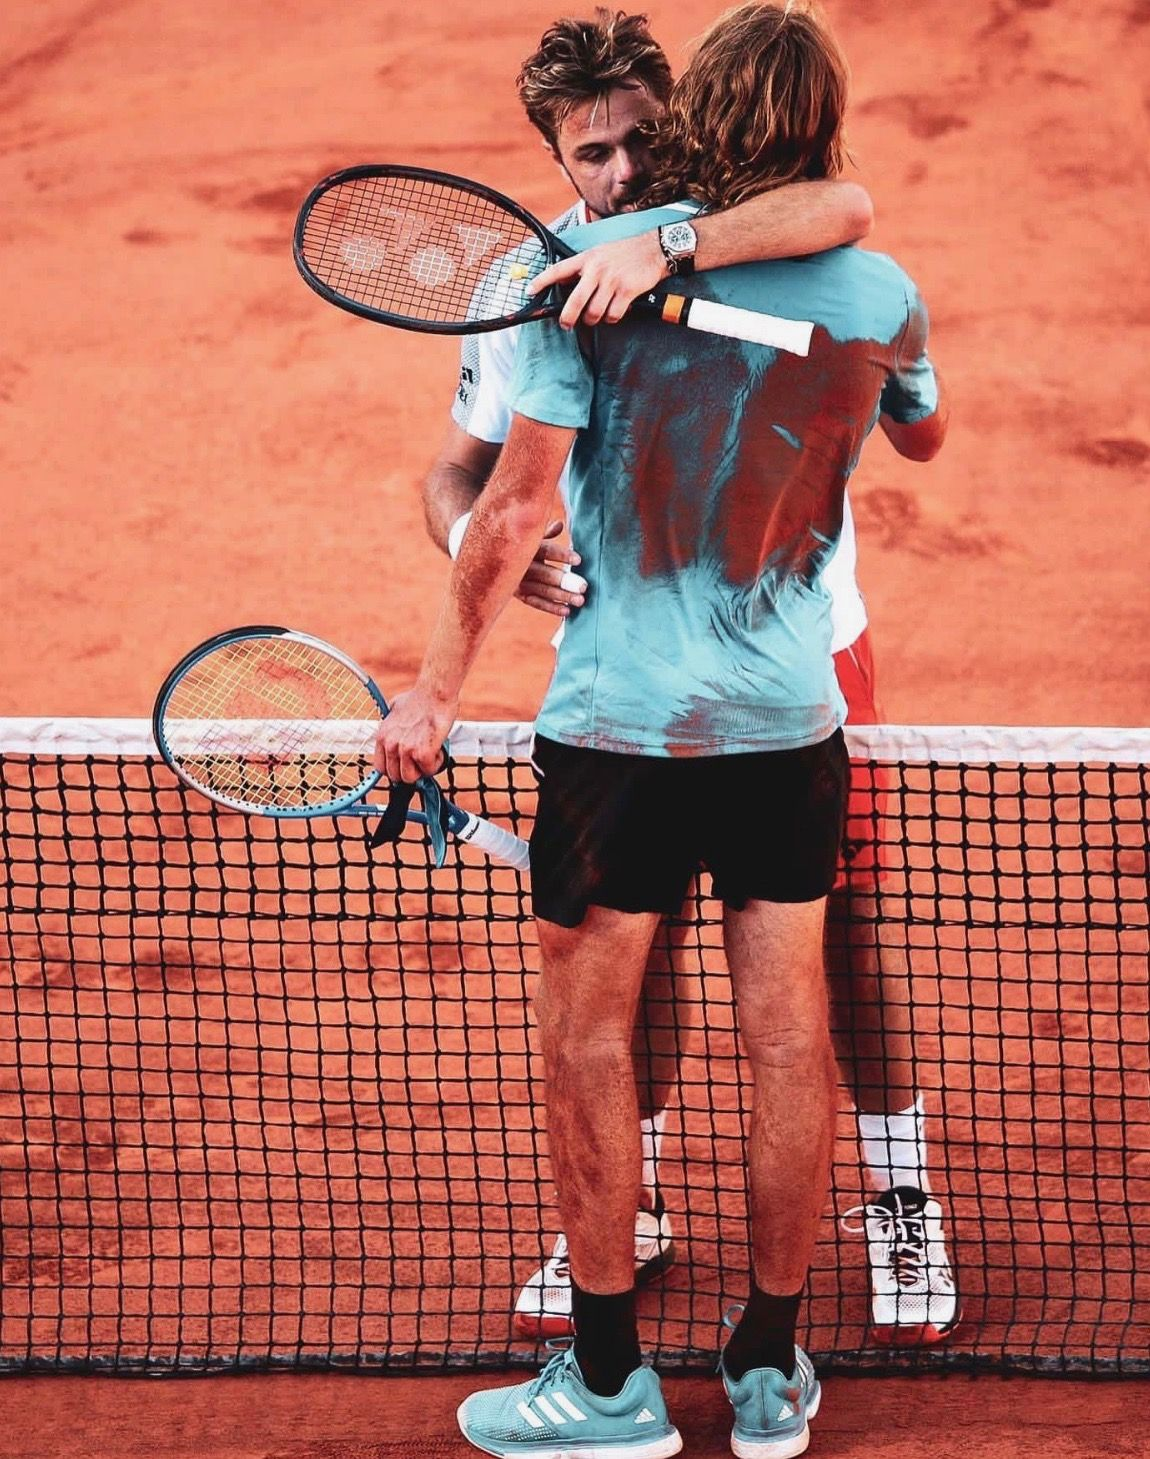 Stan Wawrinka And Stefanos Tsitsipas At The End Of An Epic 5 Setter At The 4th Round Of The French Open 2019 Tennis Stan Wawrinka Its A Mans World